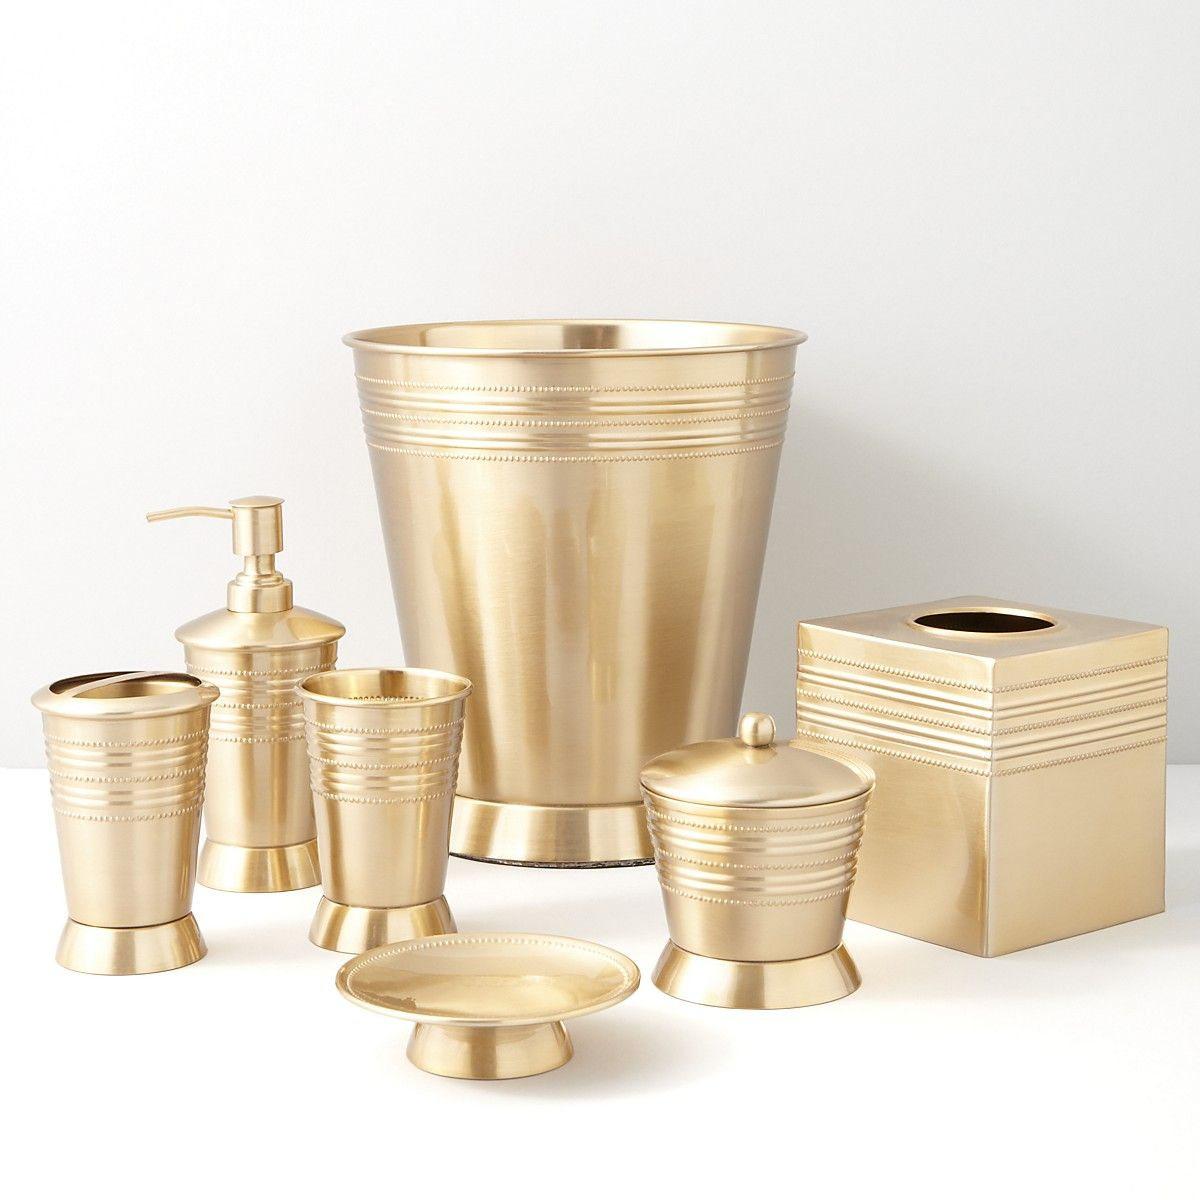 NEW Metallic Bead Satin Brass by Paradigm Trends Bath